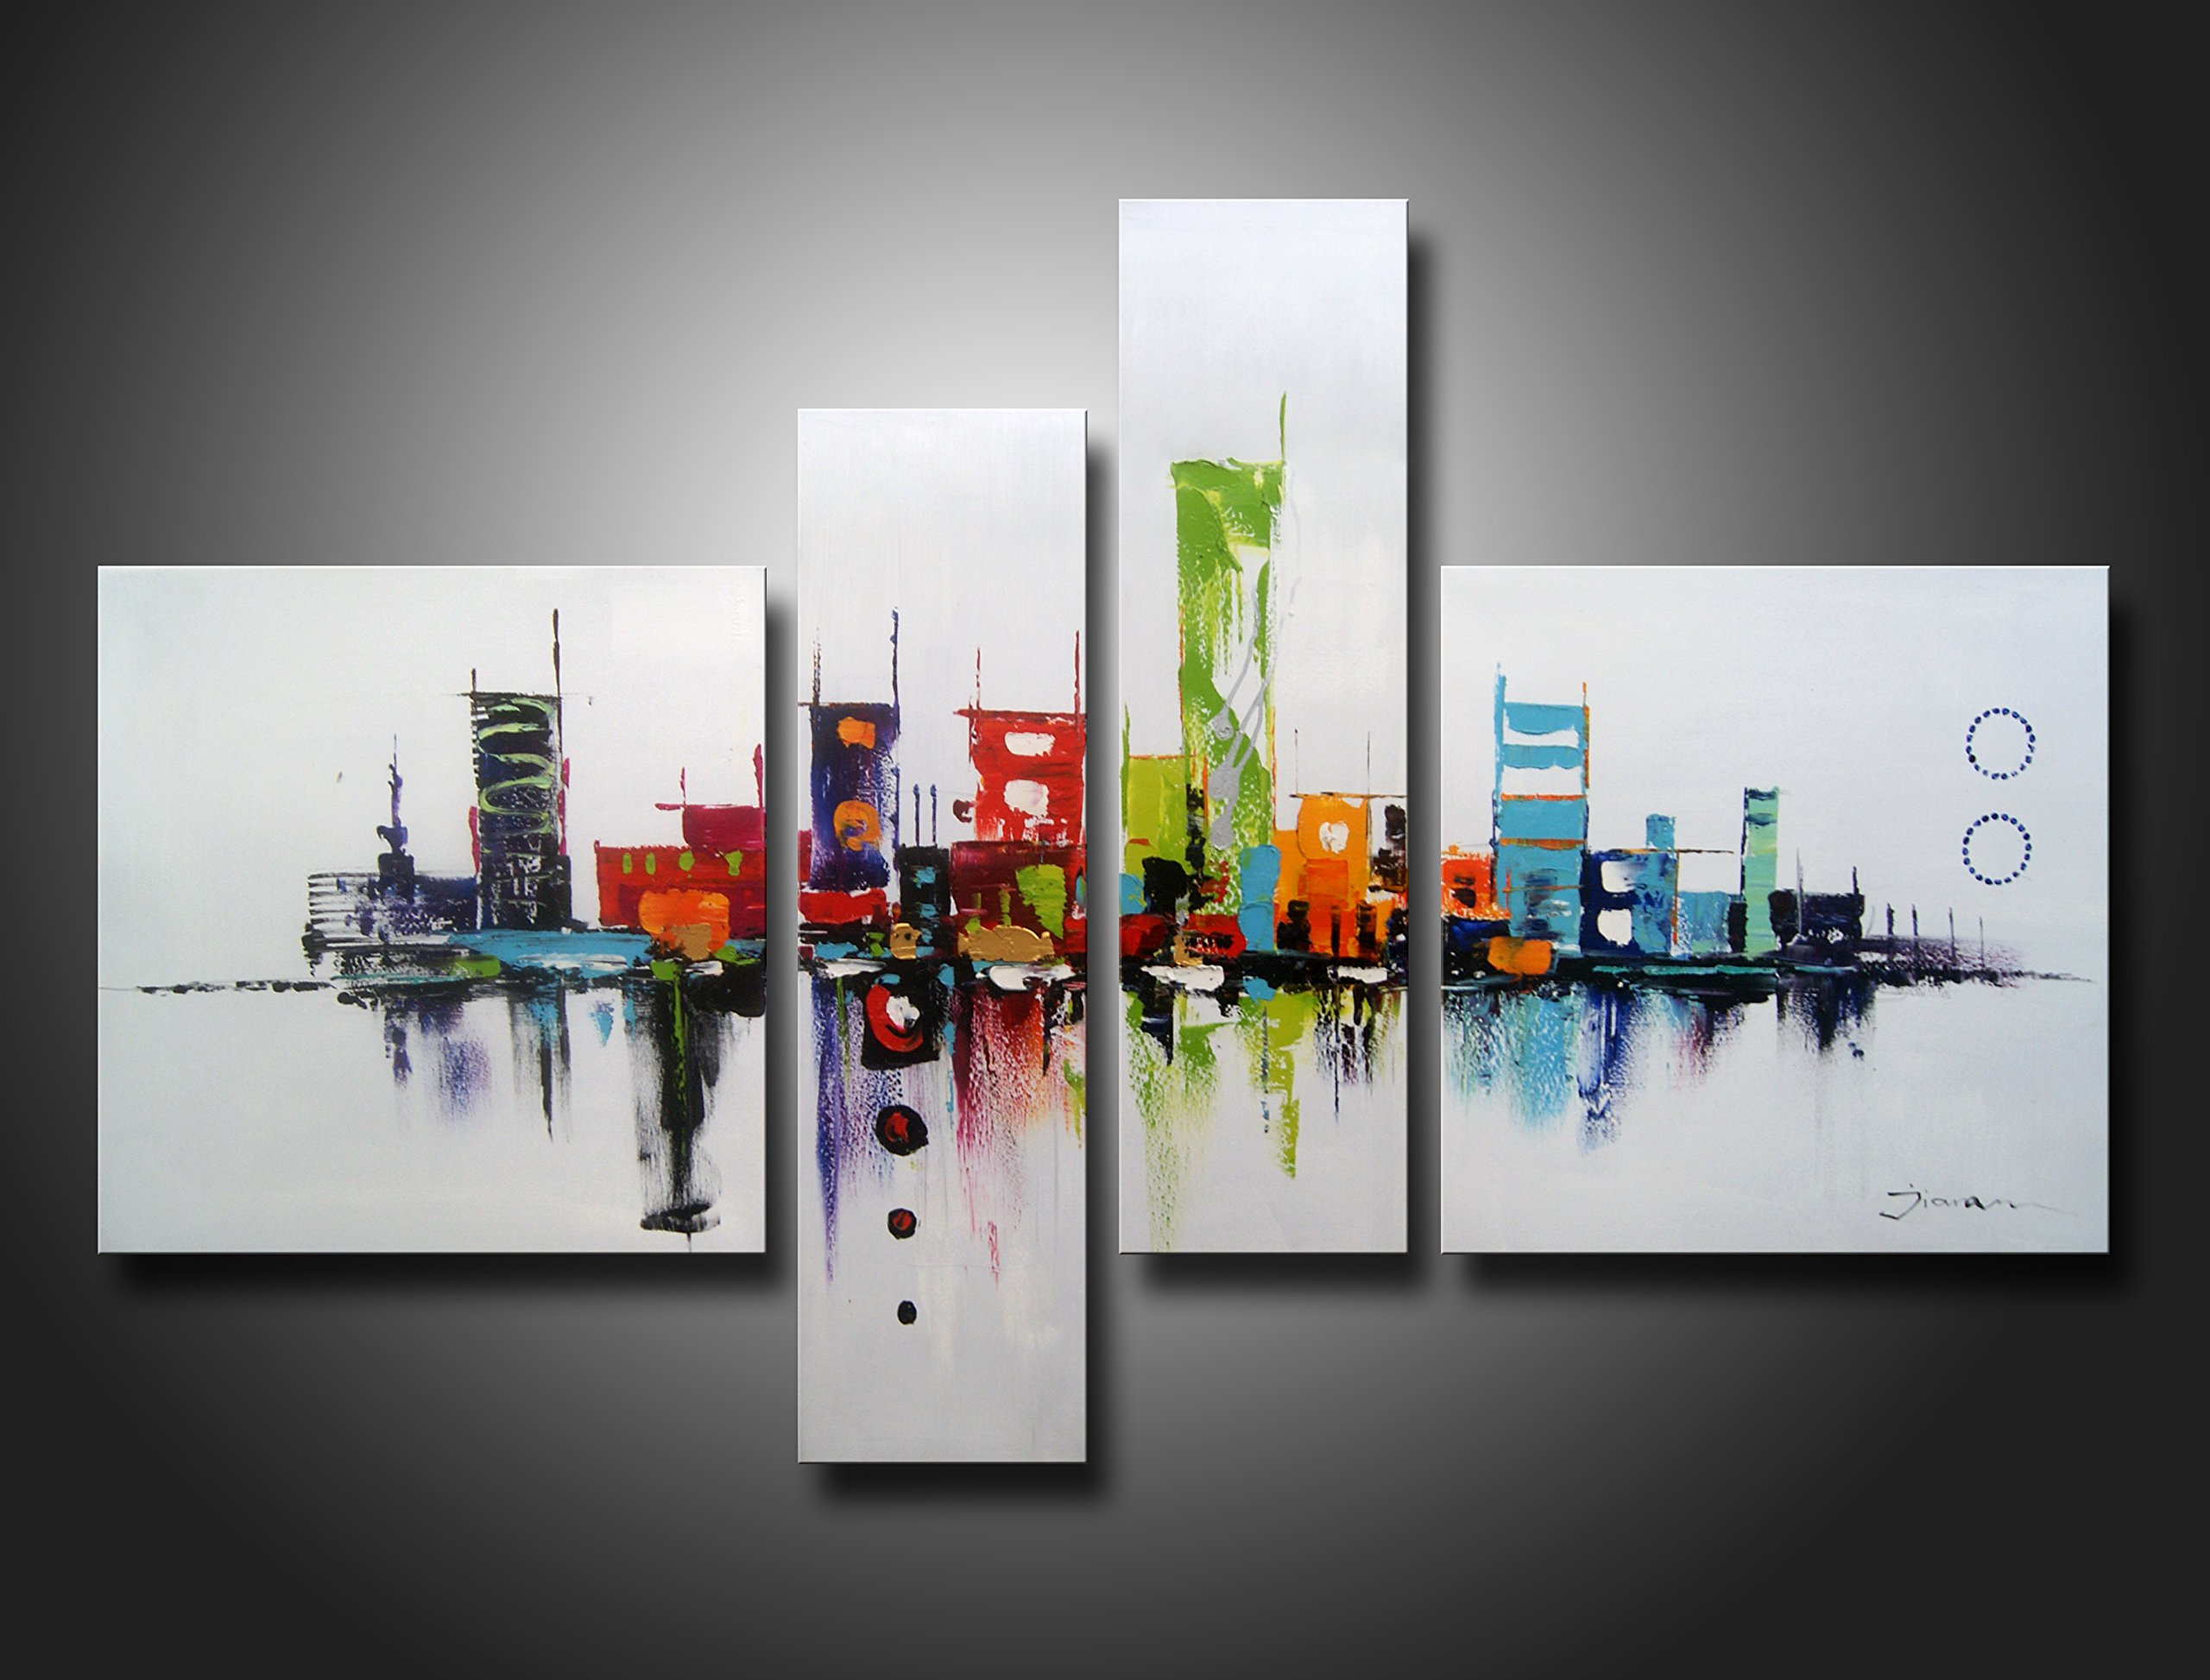 Ode-Rin Art Christmas Gift 100% Hand Painted Modern Oil Paintings Colorful World My Furture Splice 4-piece Wall Decoration-14x14Inchx2pcs,6x20Inchx2pcs